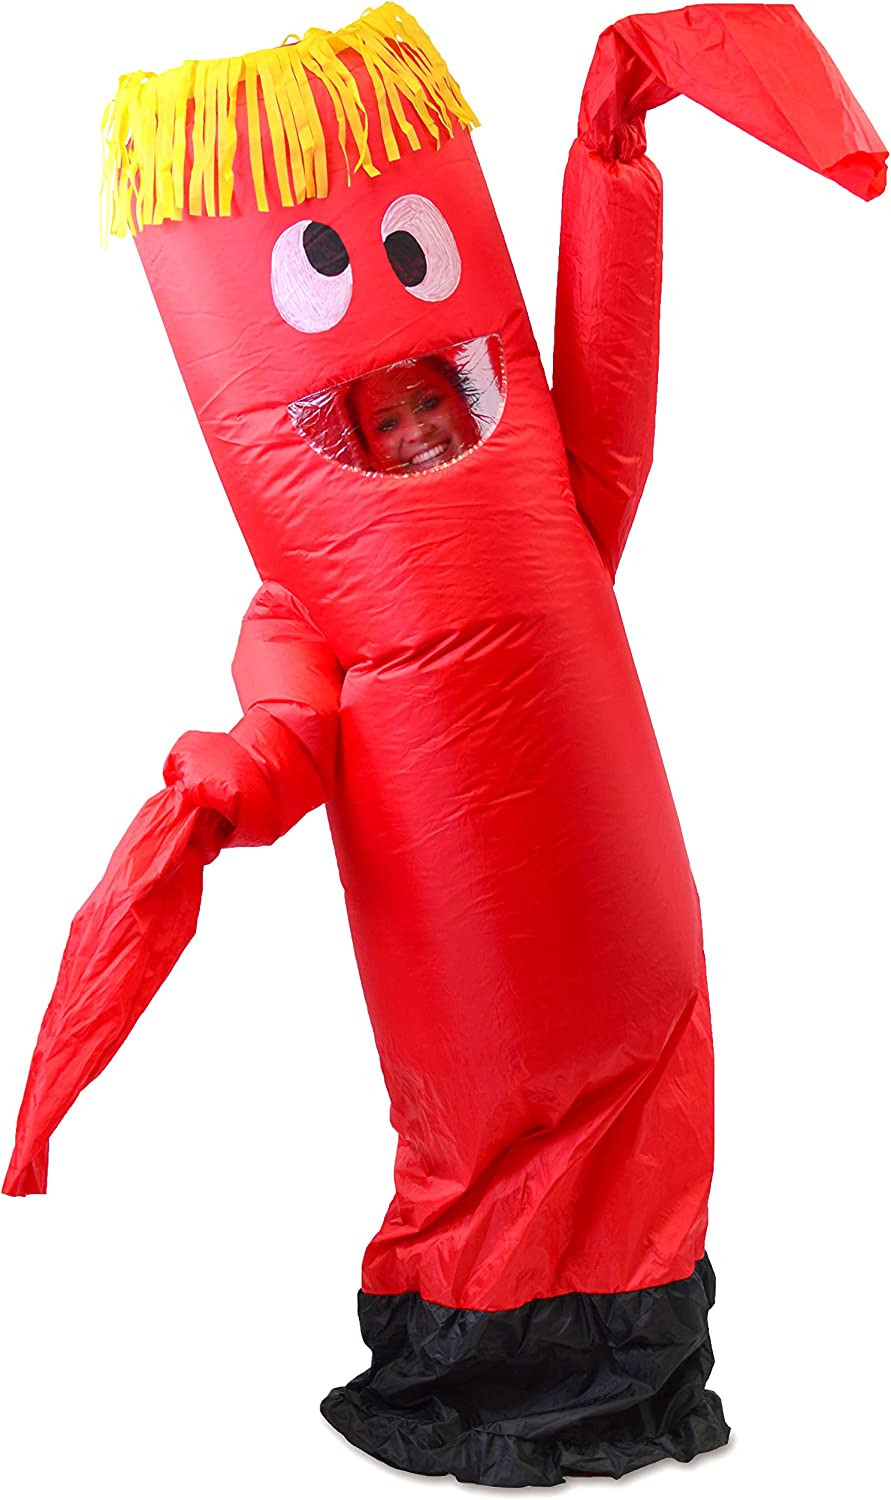 Spooktacular Creations Inflatable Costume Tube Dancer Wacky Waiving Arm Flailing Halloween Costume Adult Size